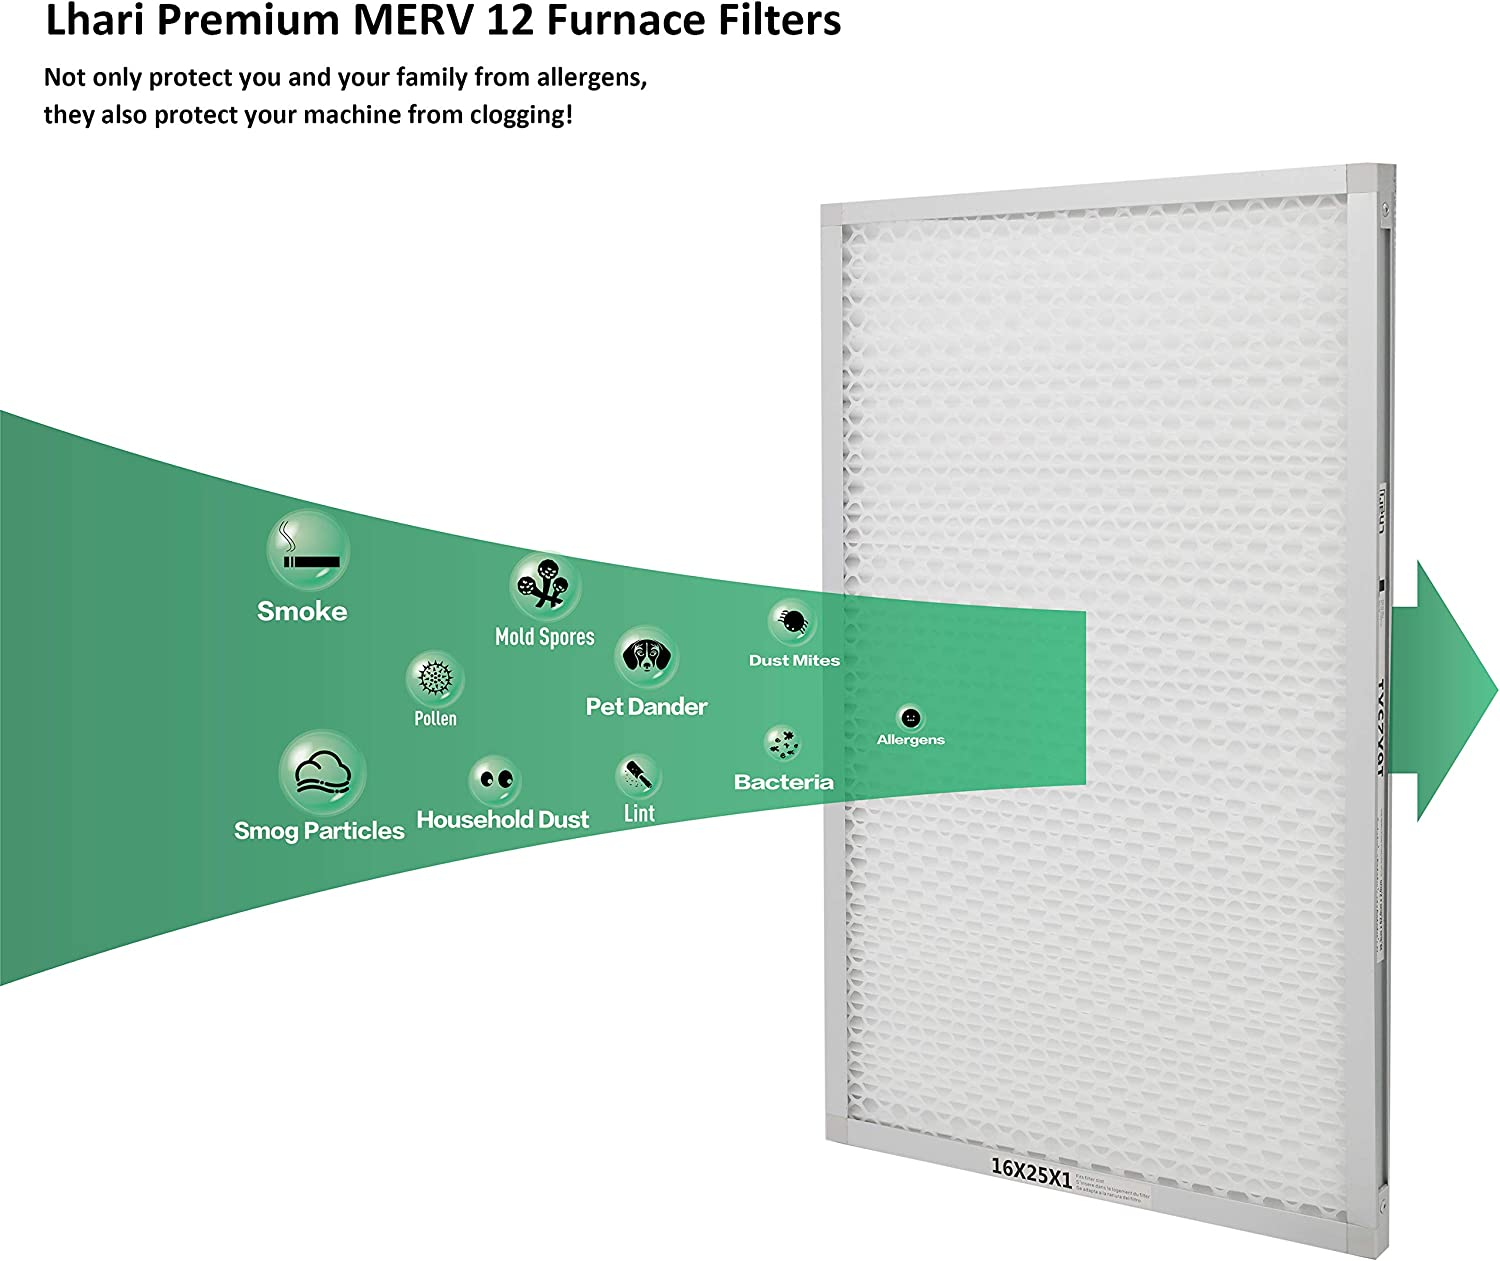 Pet Dander Removal Lhari 16x25x1 MPR1500 Air Filter Repalcement Pack of 4 Allergy Filters MERV 12 AC Furnace Pleated Air Filter